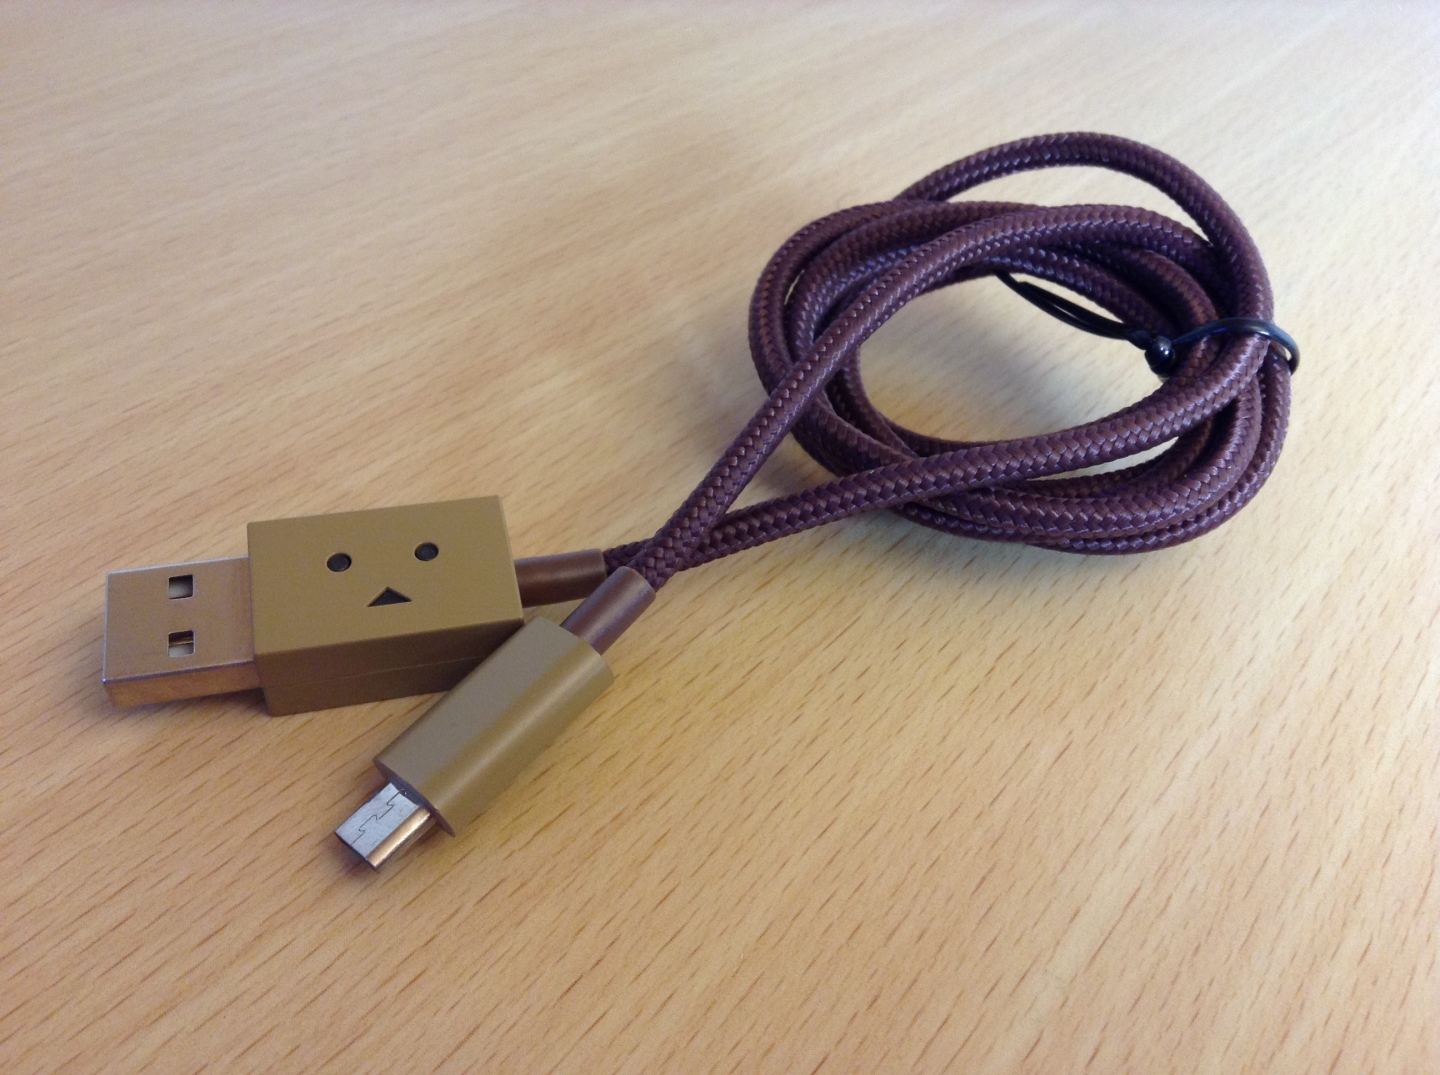 cheero-danboard-usb-cable-with-micro-usb-connector_2